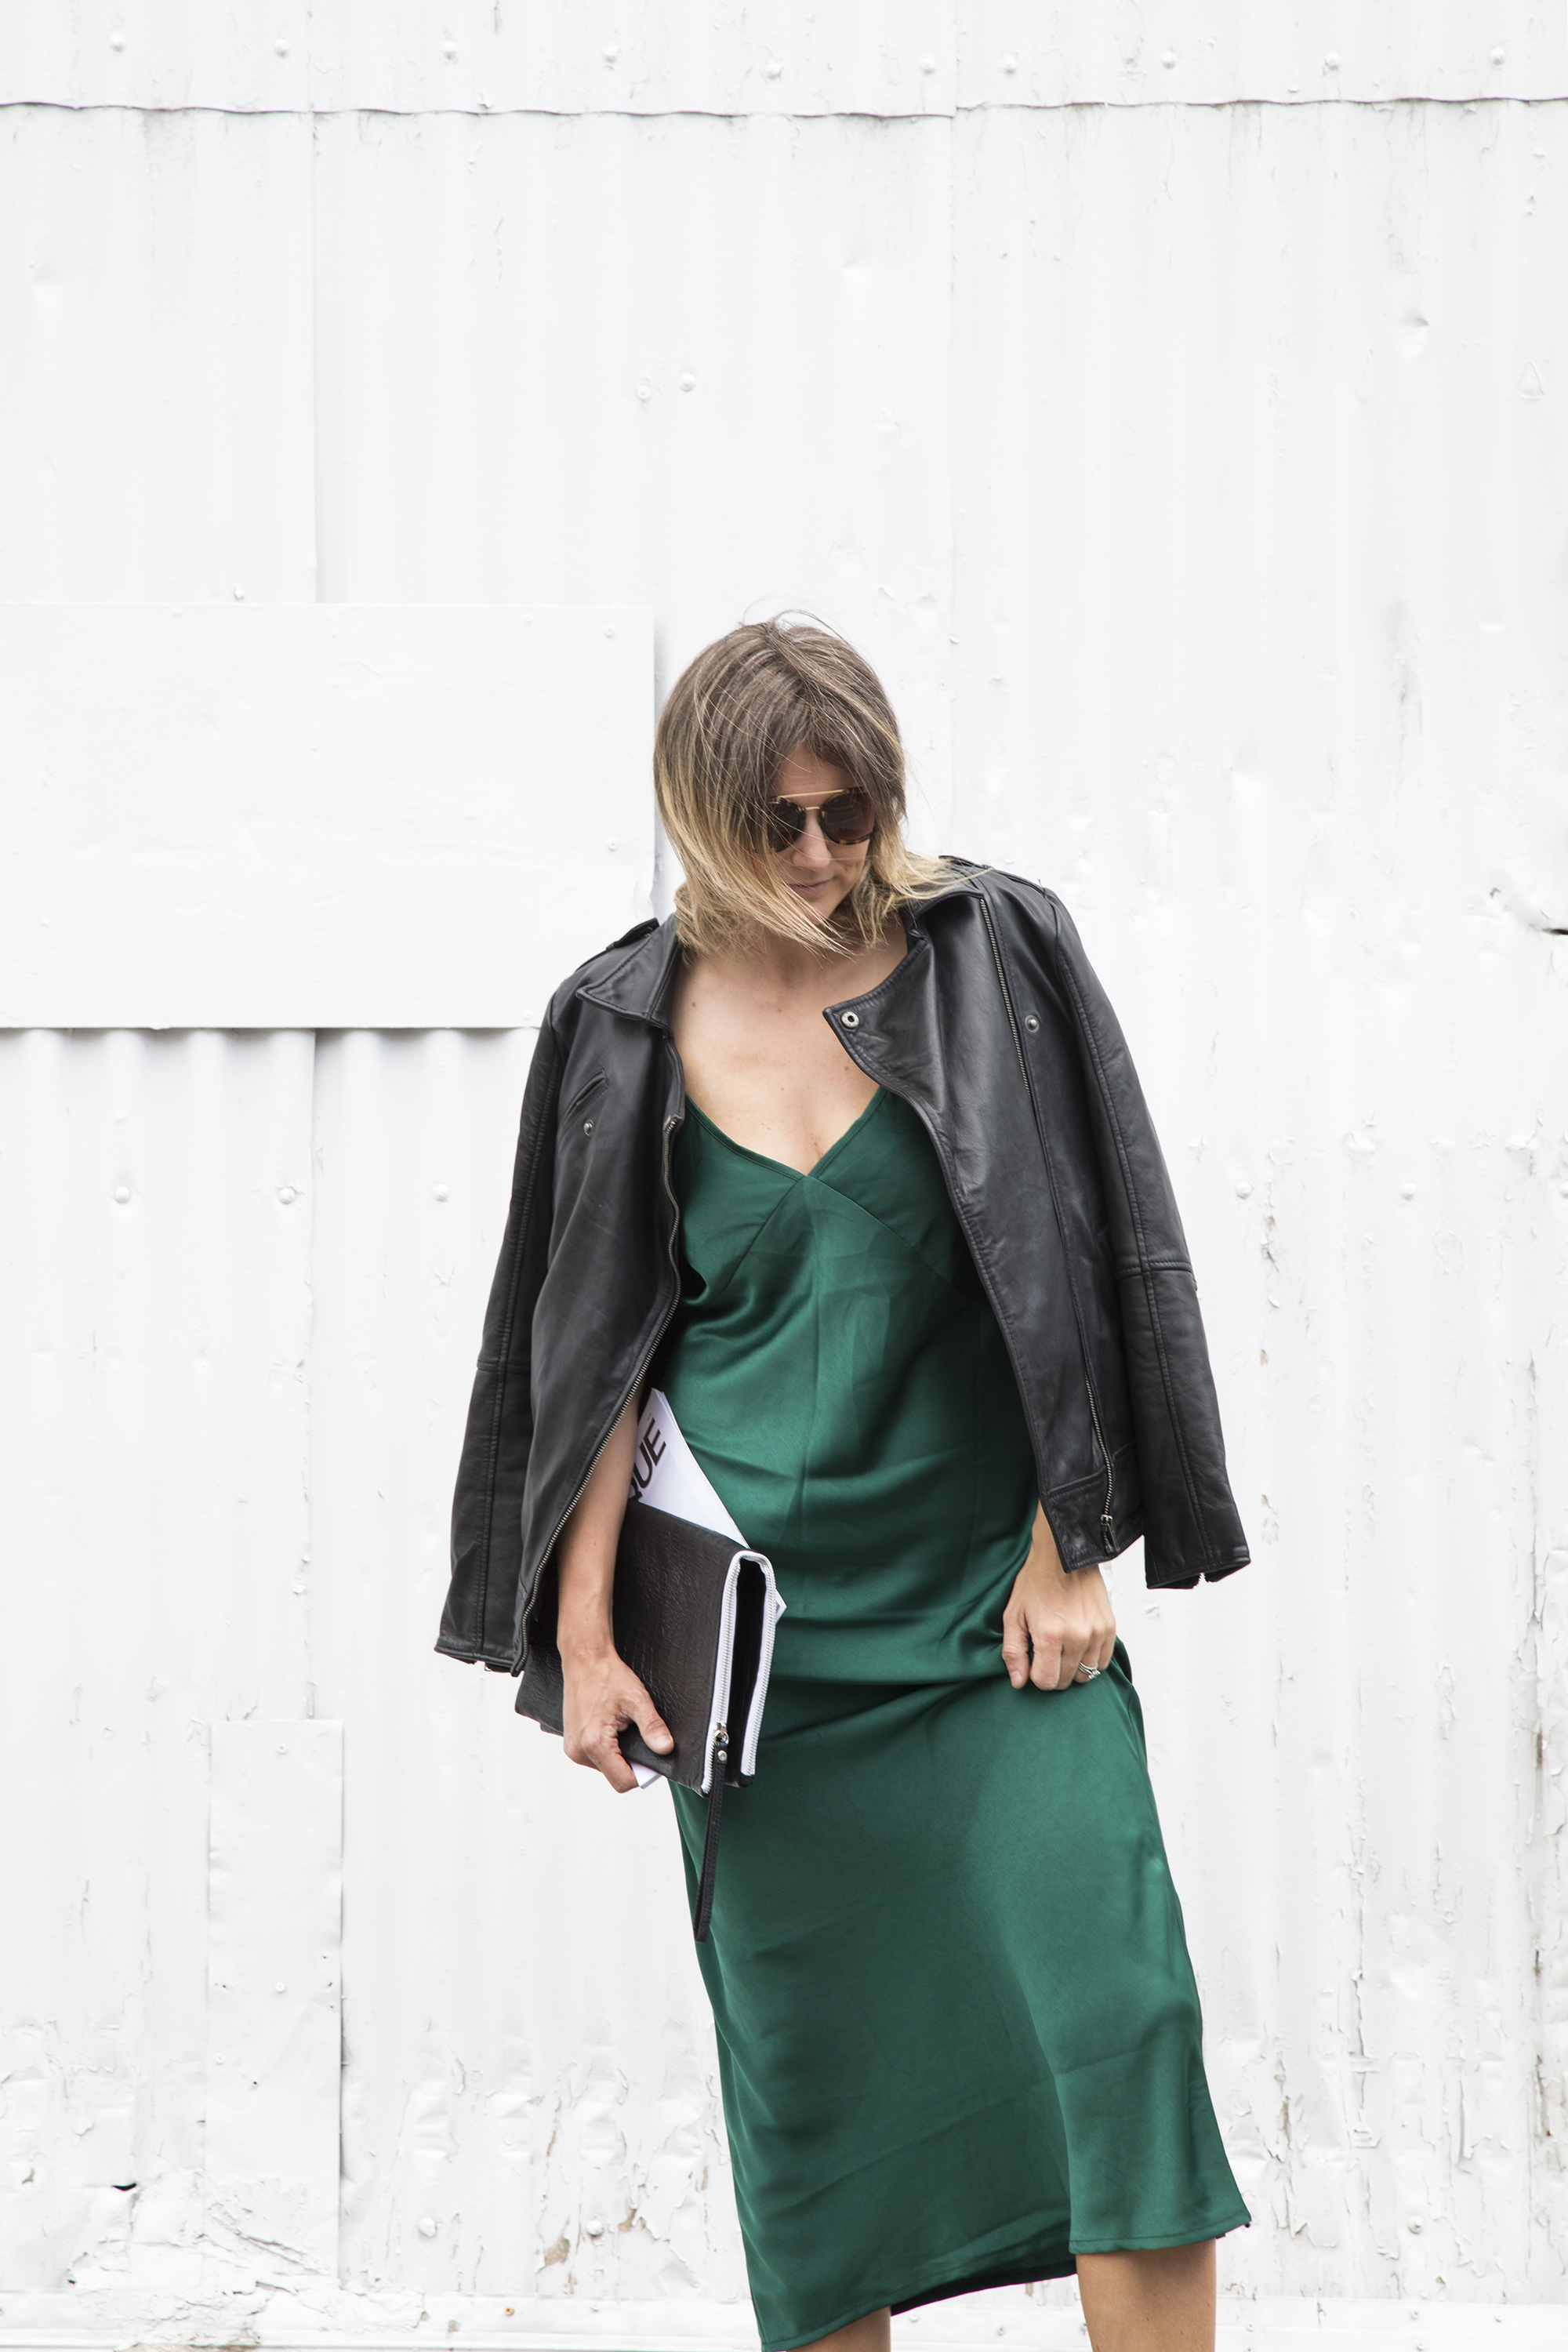 Sneakers_and_Soul_Green_Dress_03.jpg